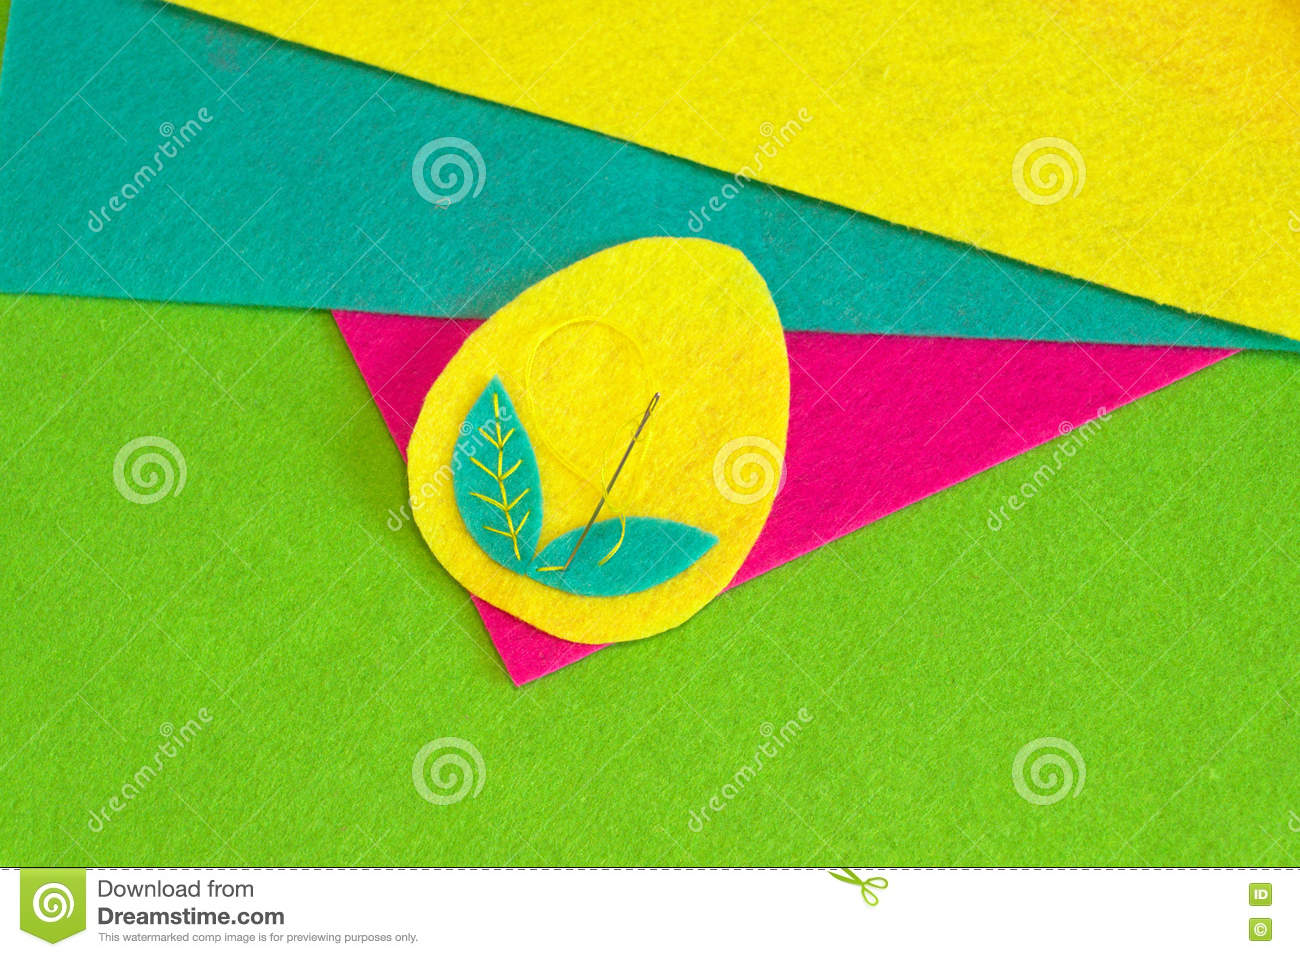 Easter egg patterns crafts how to sew easter egg ornament easy